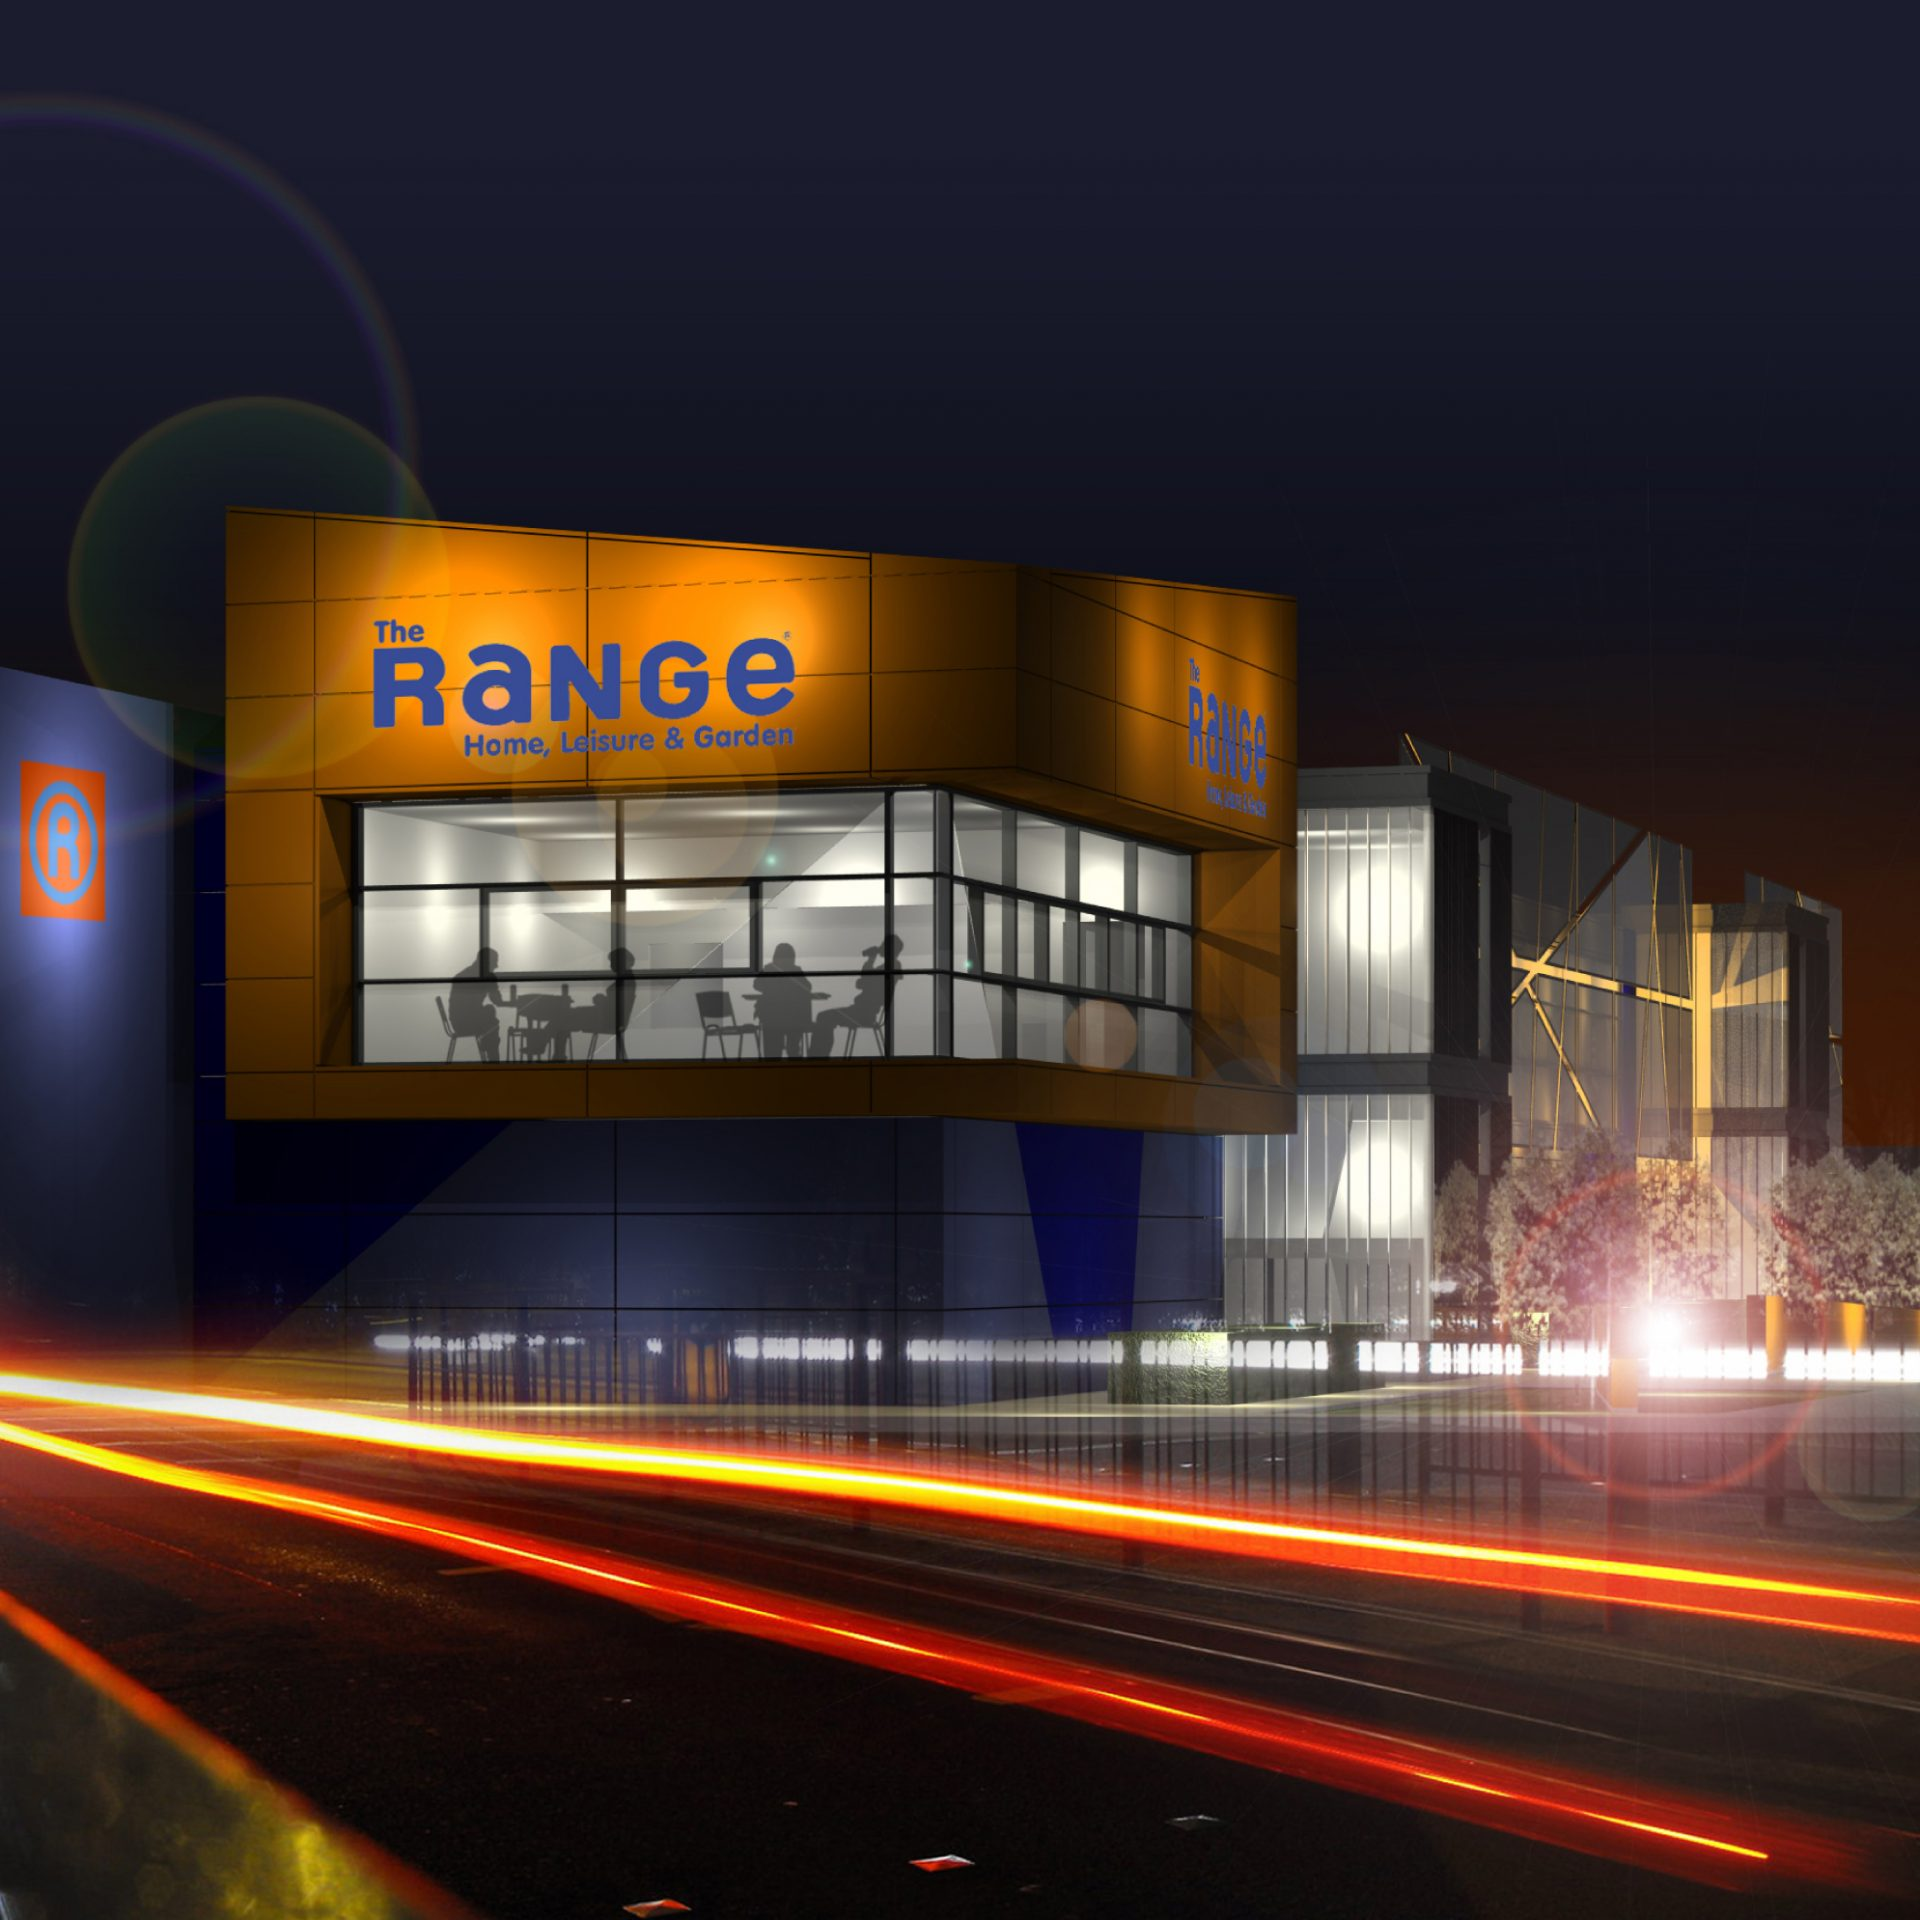 The Range Cafe Plymouth Visualisation Billacombe Road Night